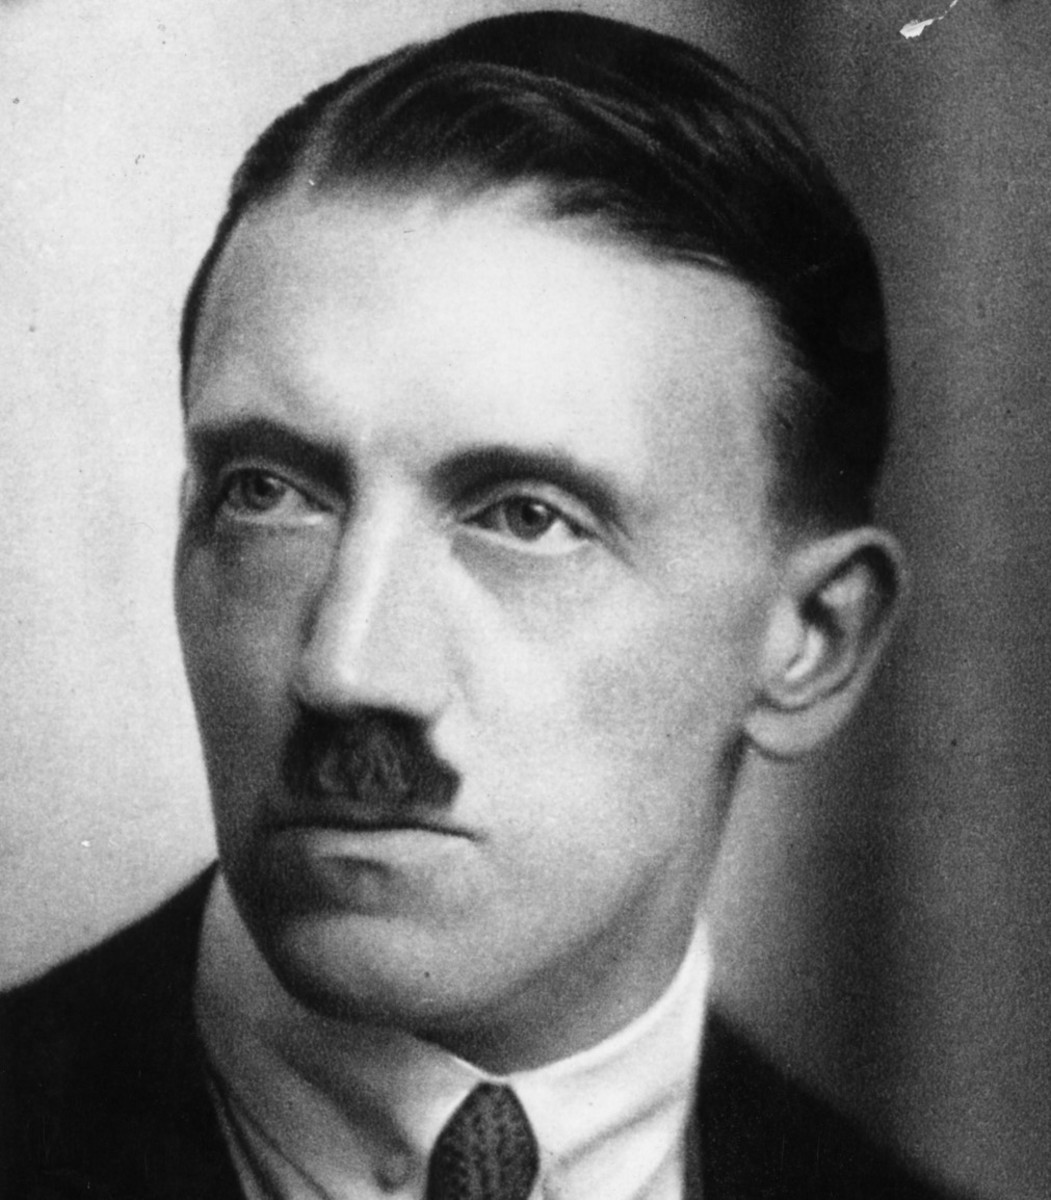 Adolf Hitler: born 20 April 1889 died 30 April 1945 was the leader of the Nazi Party who developed the racial theory of an aryan master race as an ideology for Germany and beyond